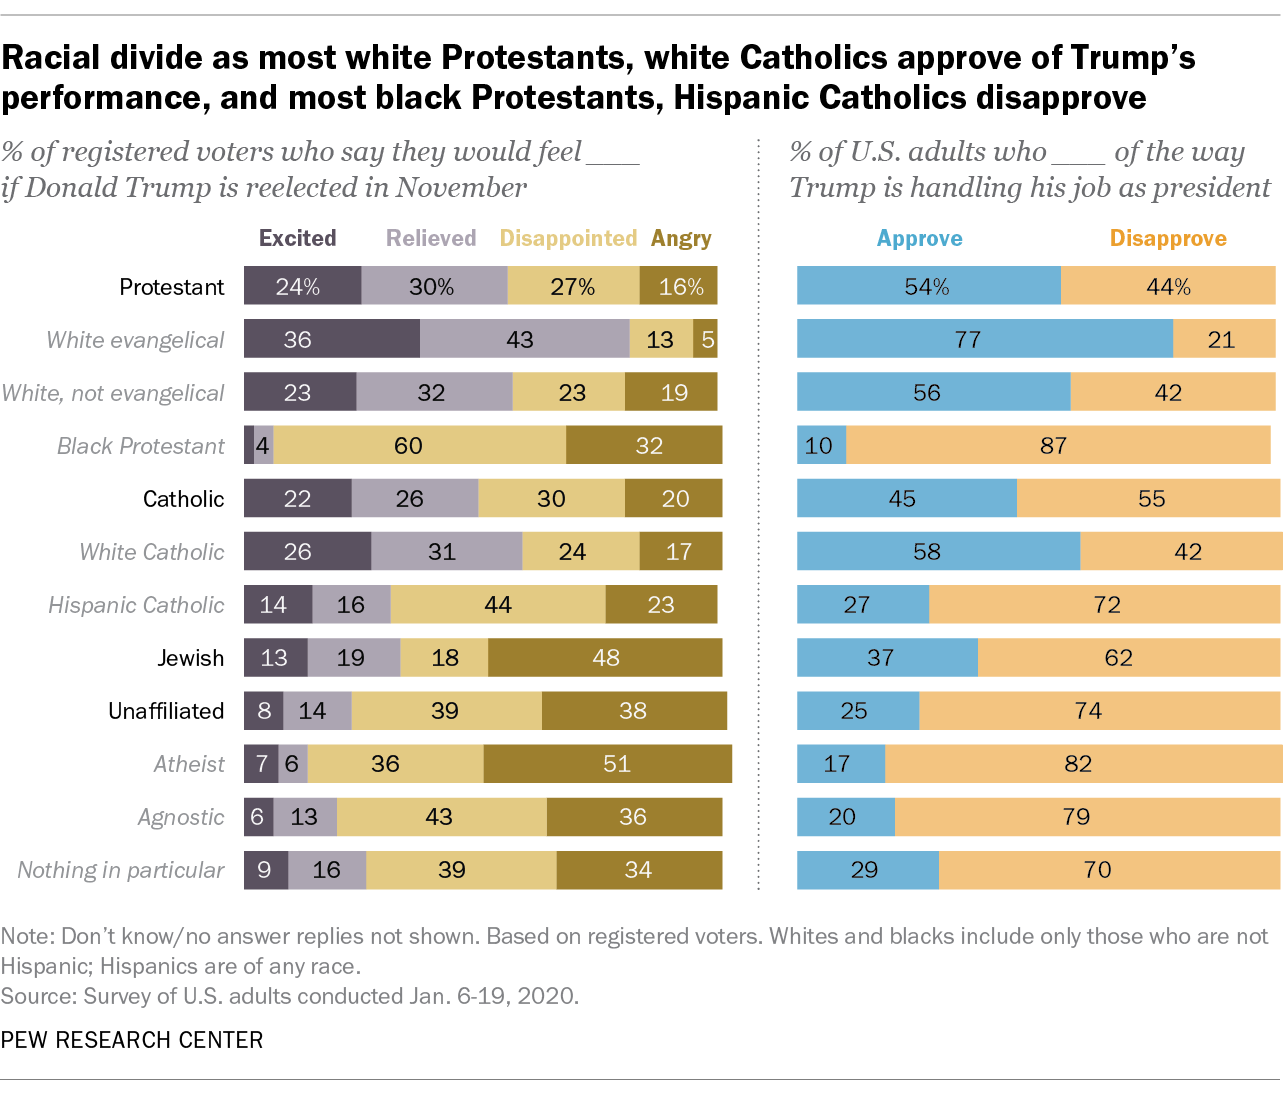 Racial divide as most white Protestants, white Catholics approve of Trump's performance, and most black Protestants, Hispanic Catholics disapprove